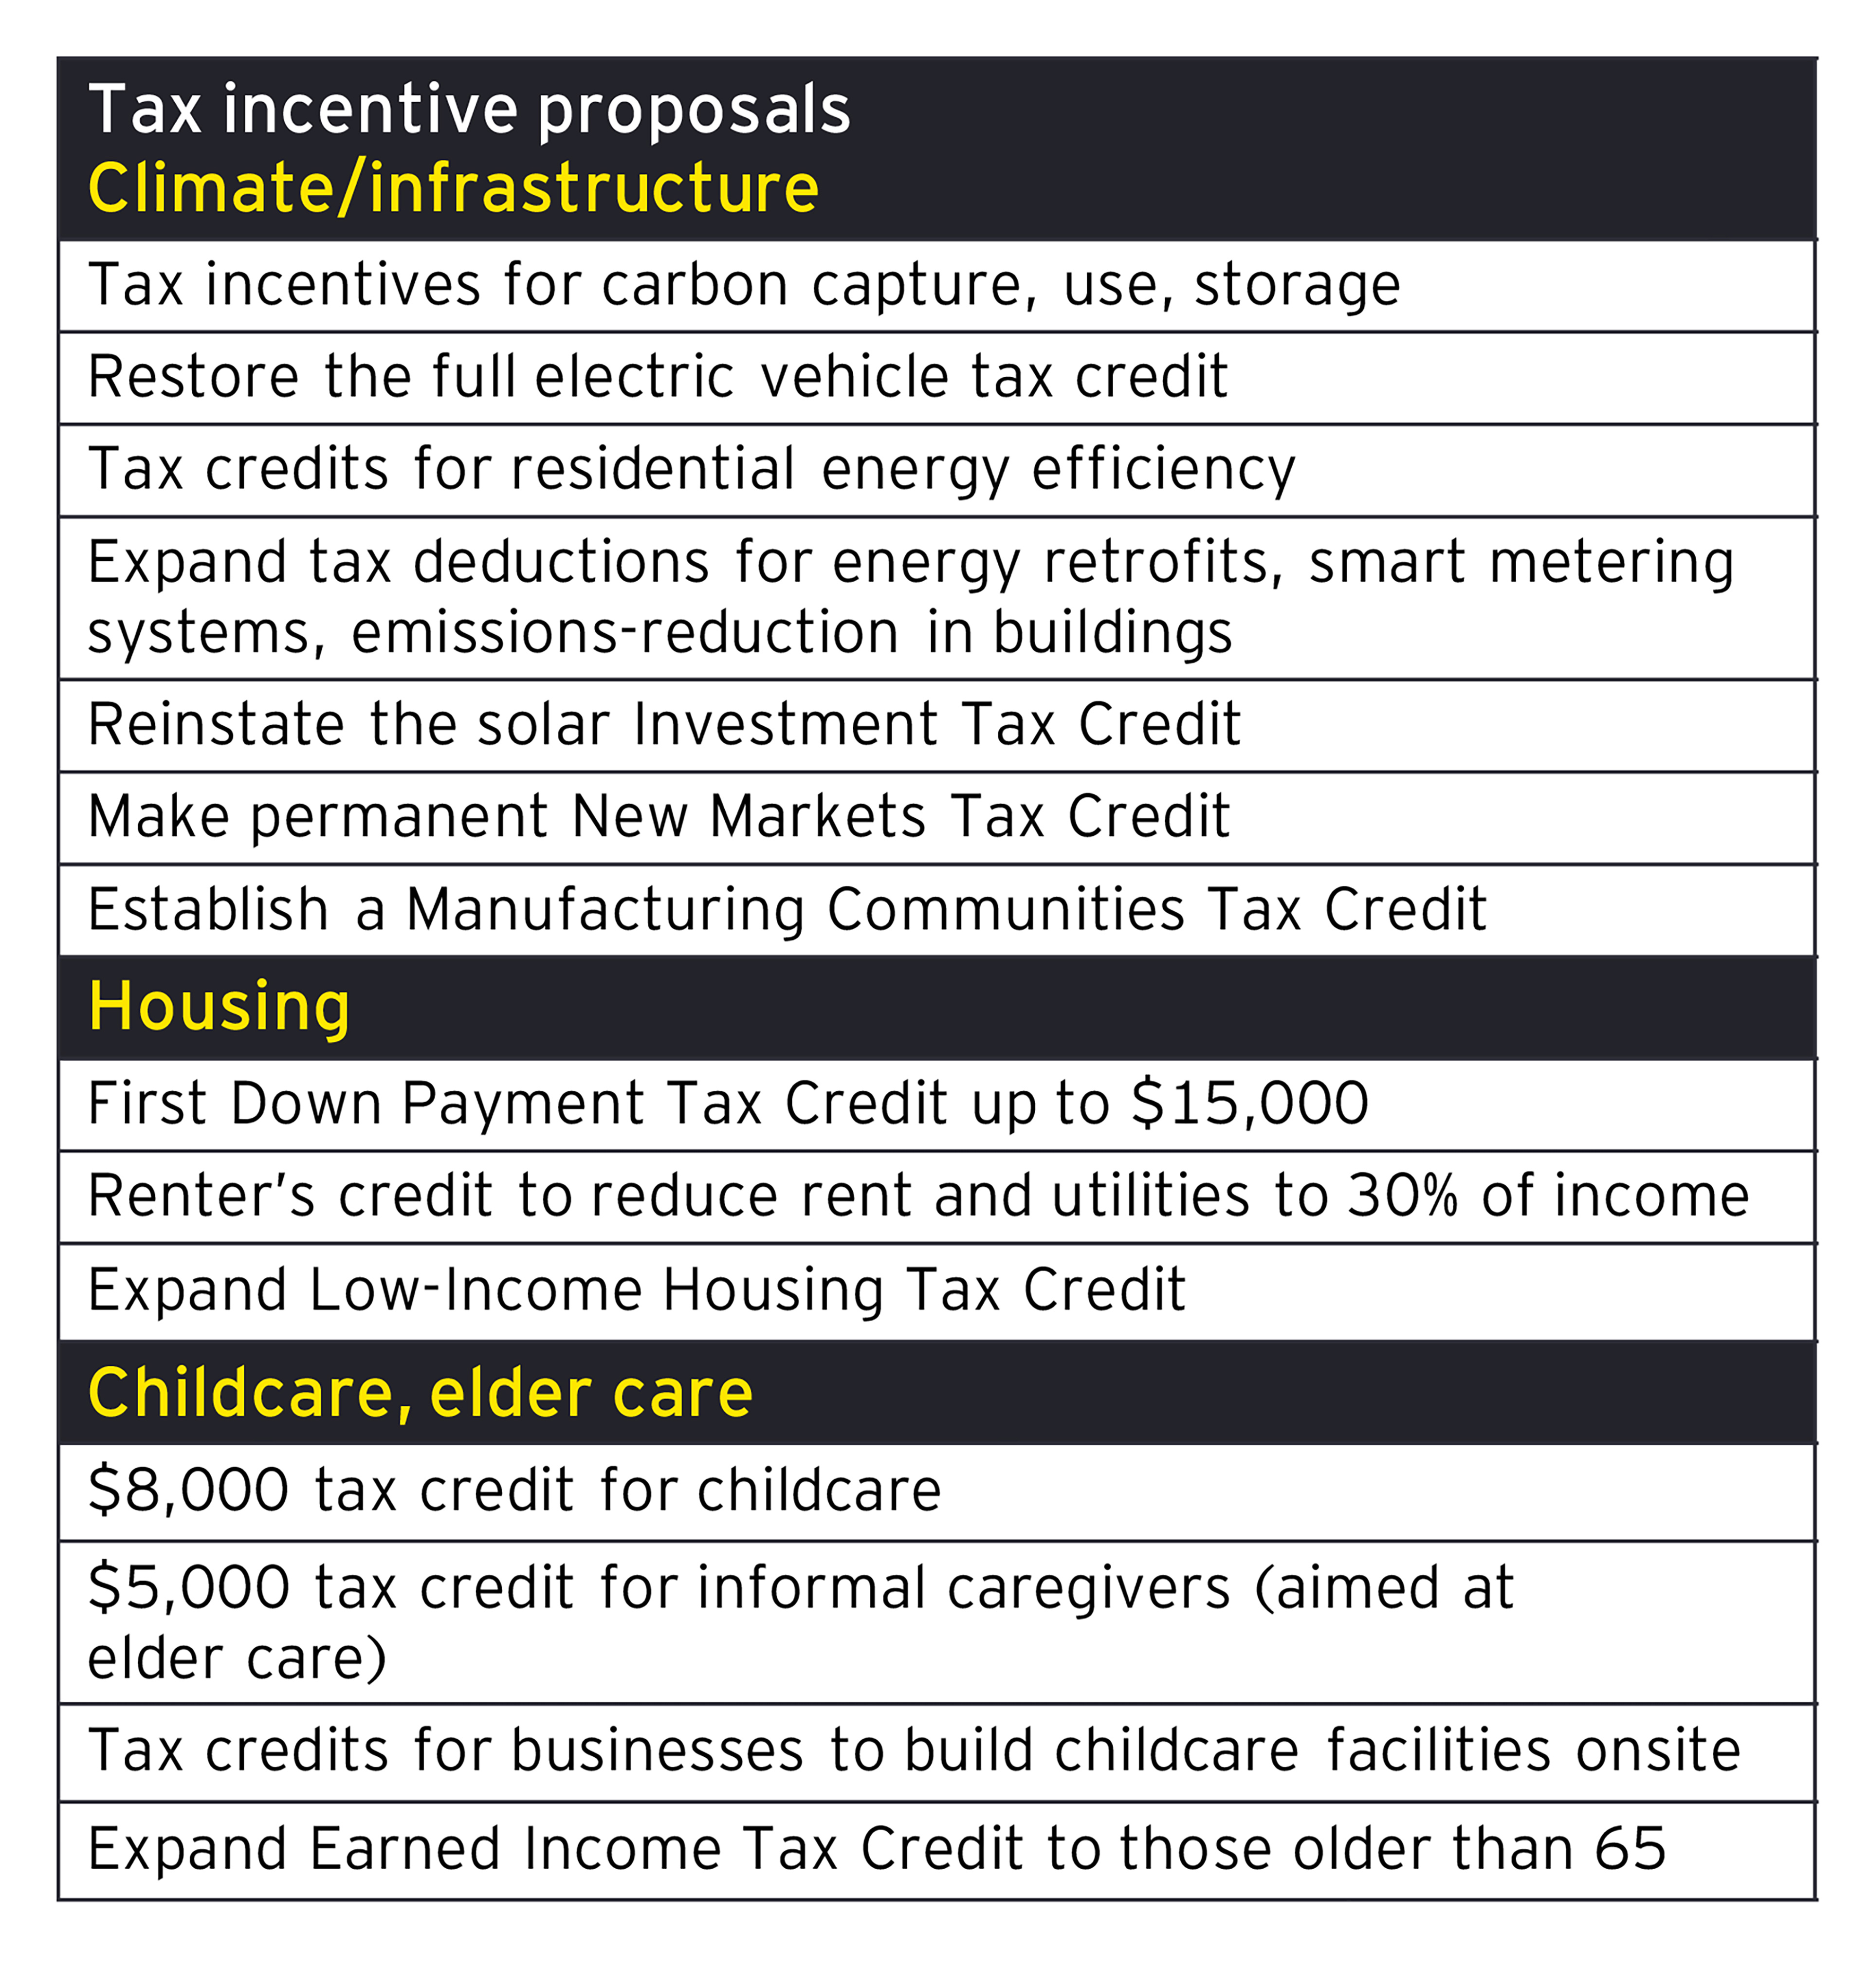 EY - Tax incentive proposals